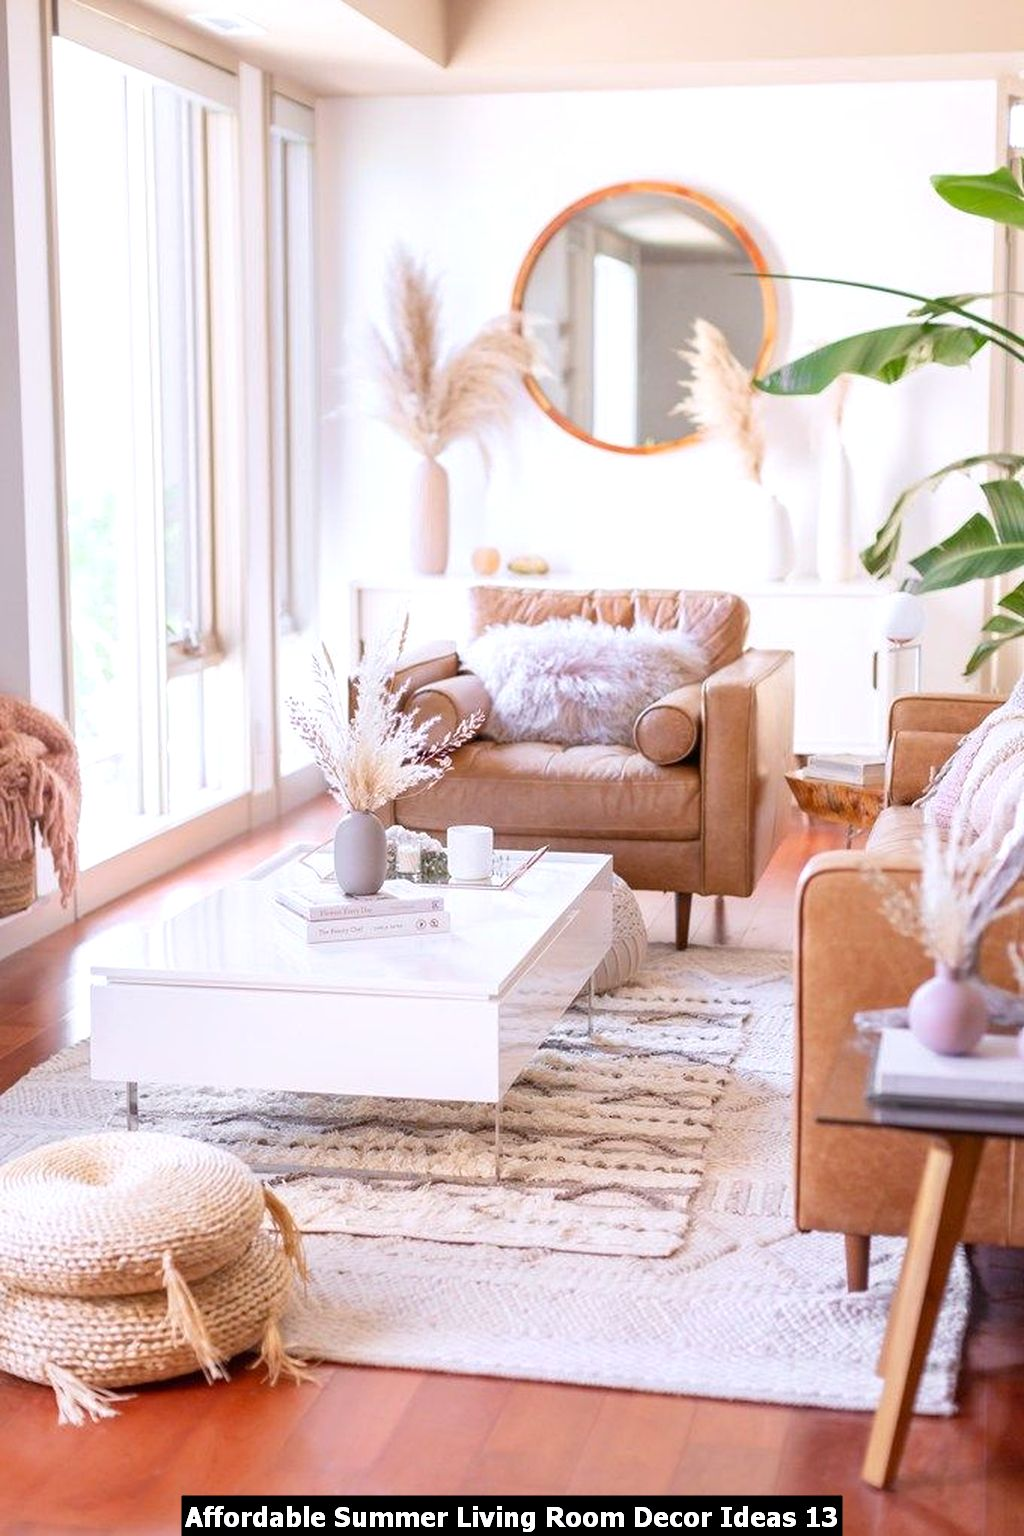 Affordable Summer Living Room Decor Ideas 13